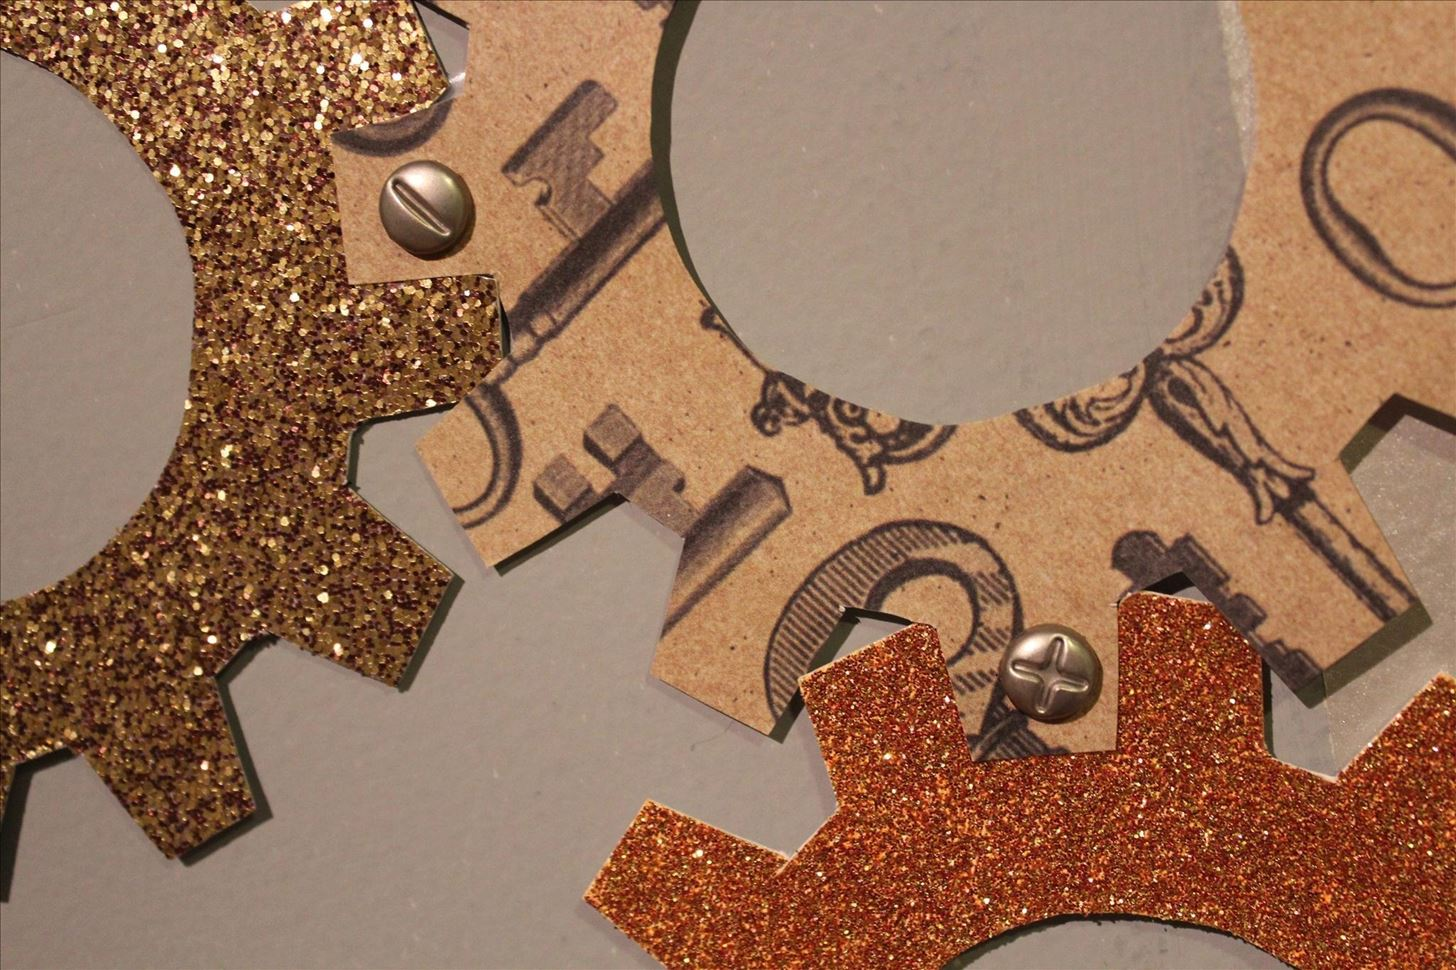 Steampunk Your Halloween Decorations with These DIY Interlocking Paper Gears